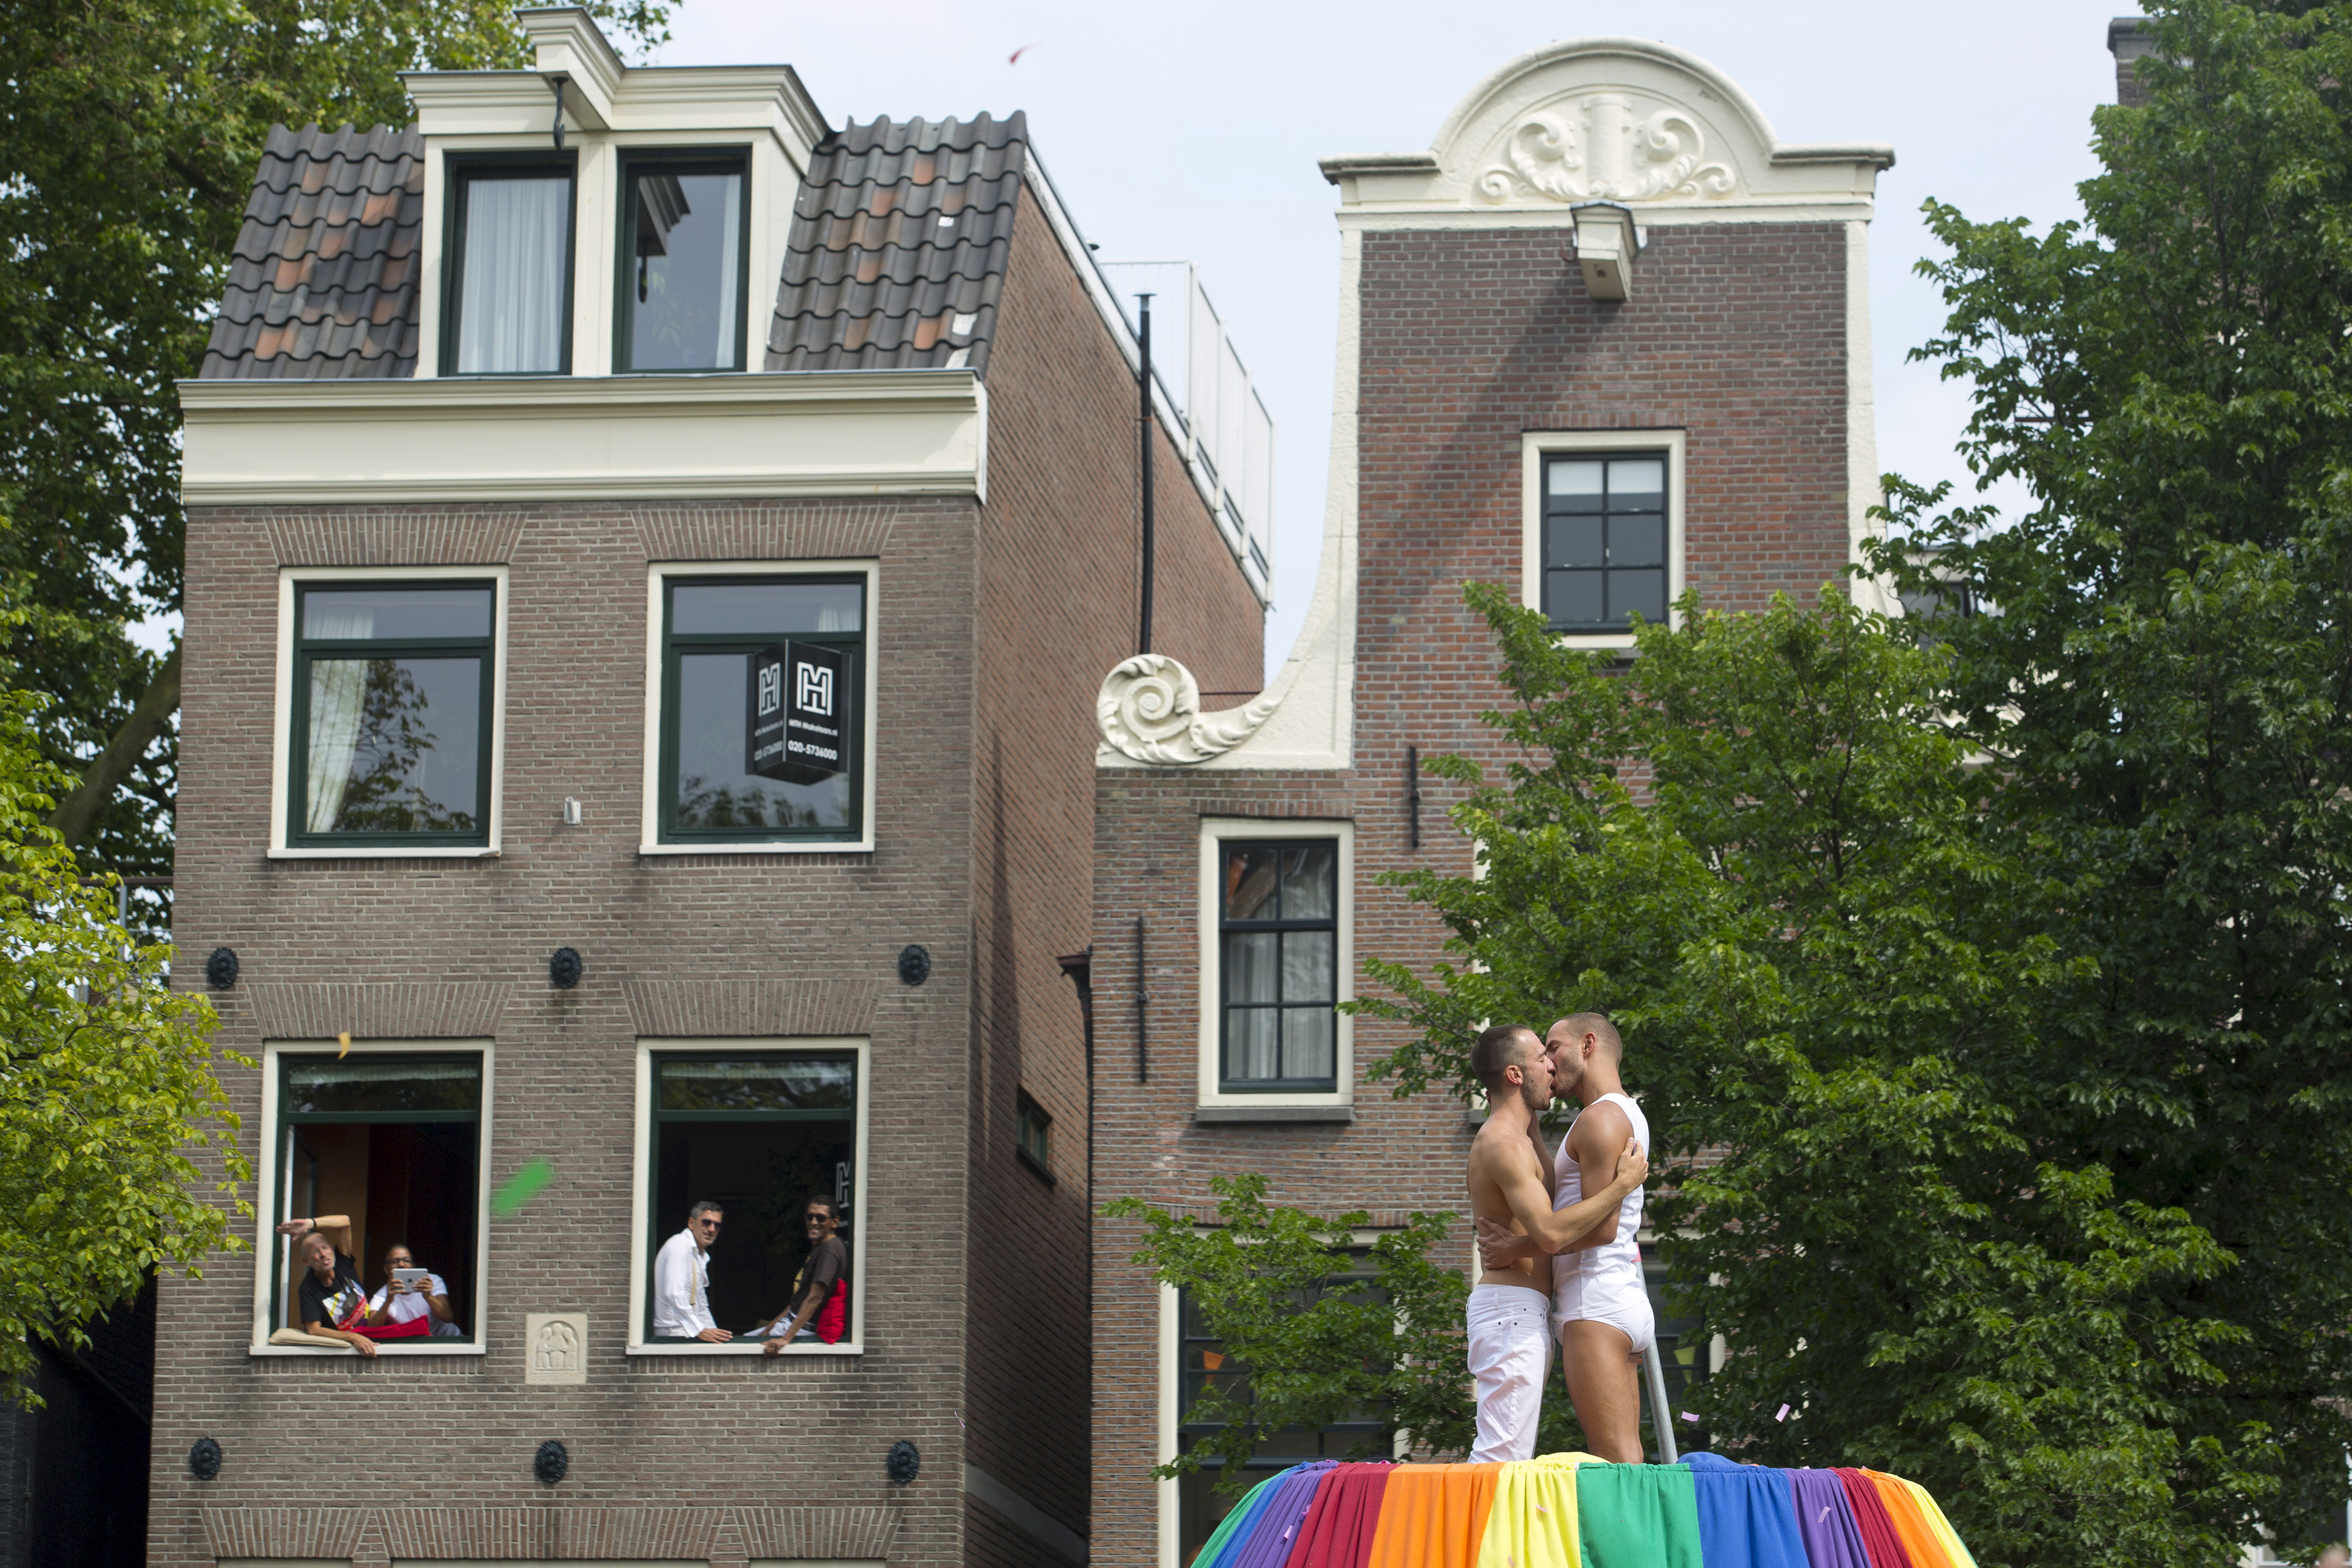 Participants of the 20th Canal Gay Parade celebrate on a boat in the Prinsengracht in Amsterdam, the Netherlands August 1, 2015.